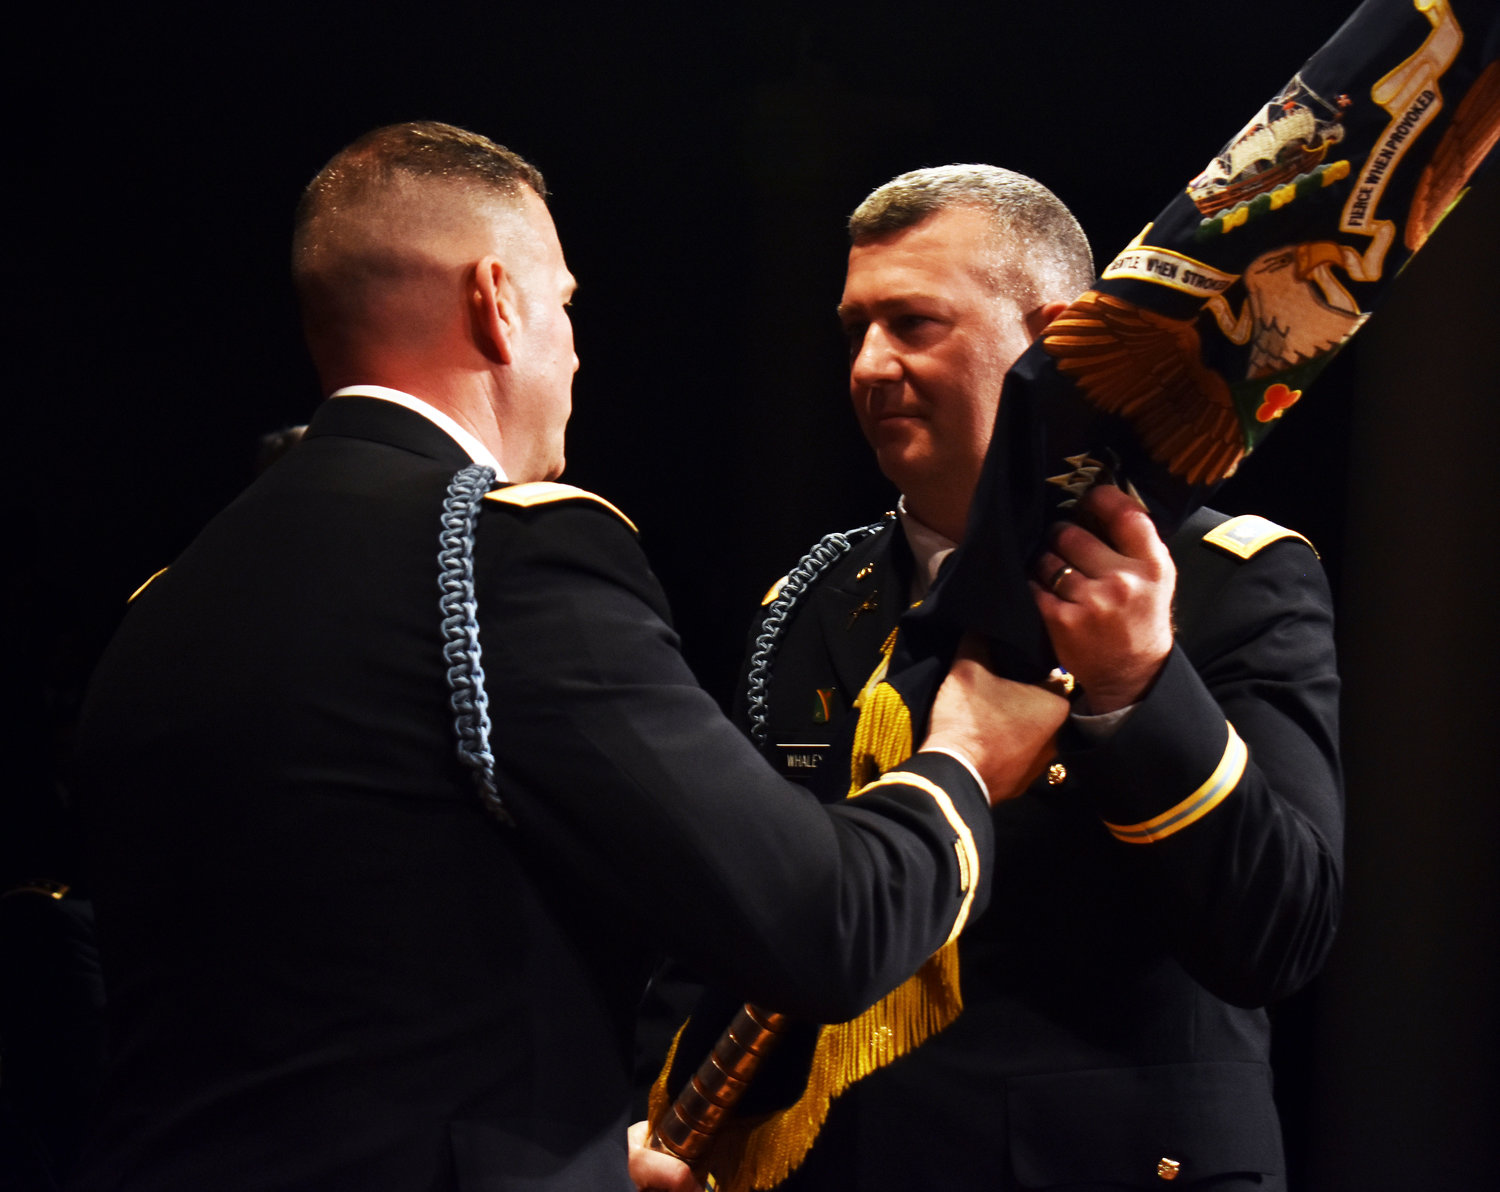 Lt. Col. Joseph Whaley, right, received the colors of the 1st Battalion, 69th Infantry from Col. Christopher Cronin, the commander of the 27th Infantry Brigade Combat Team, during change of command ceremonies held on March 16 at the Cooper Union in Manhattan.